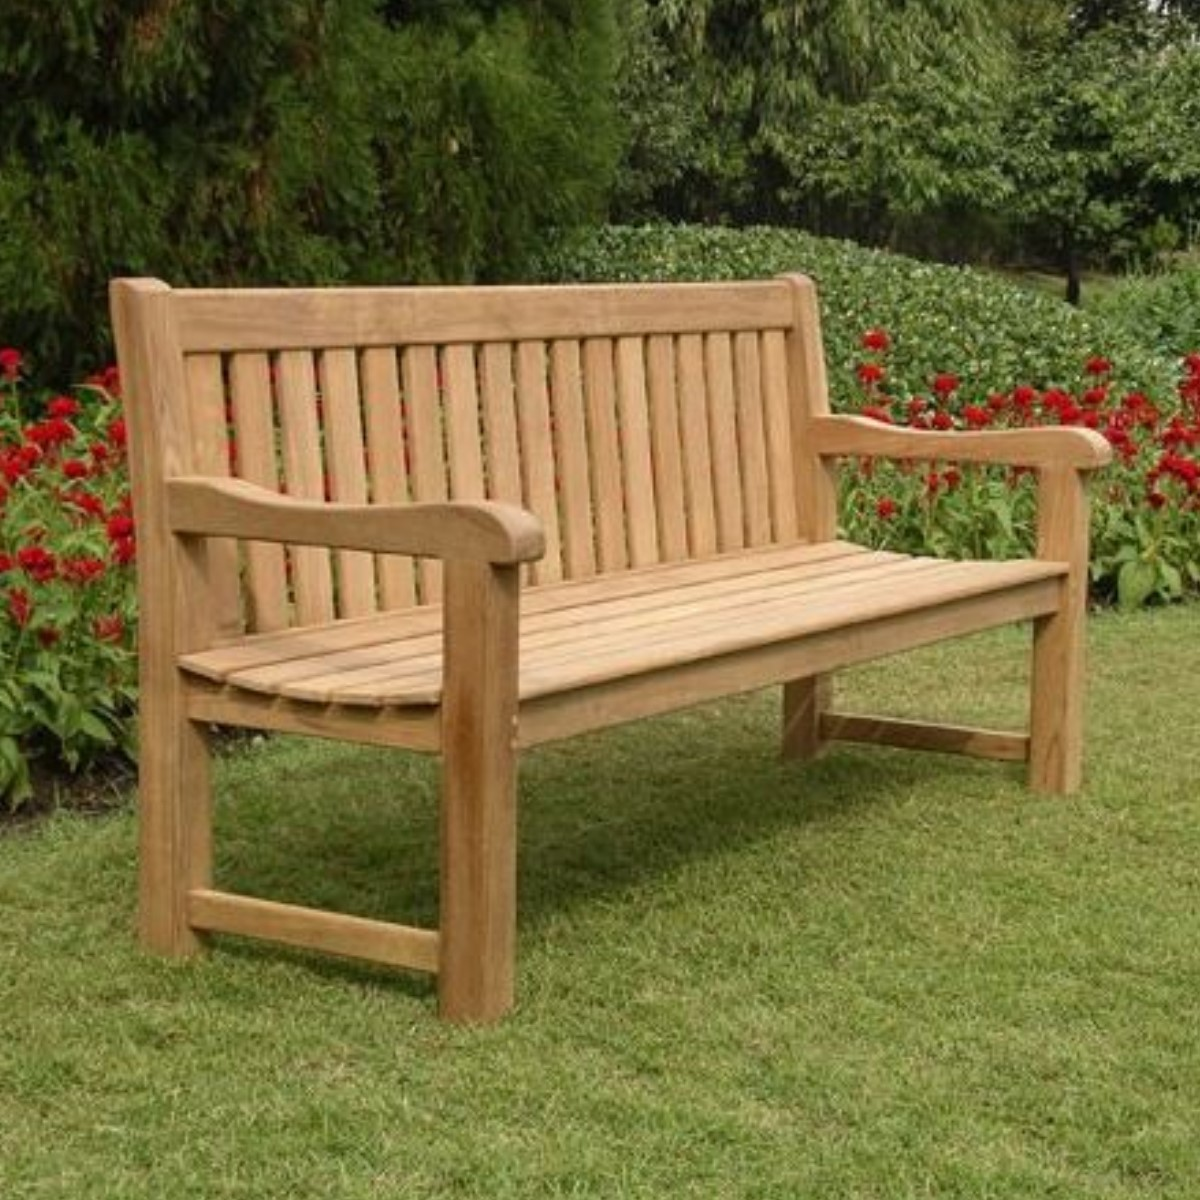 A 1.8m teak park bench with thick slats at the back and seat located on a lawn with a bright flower bed behind it